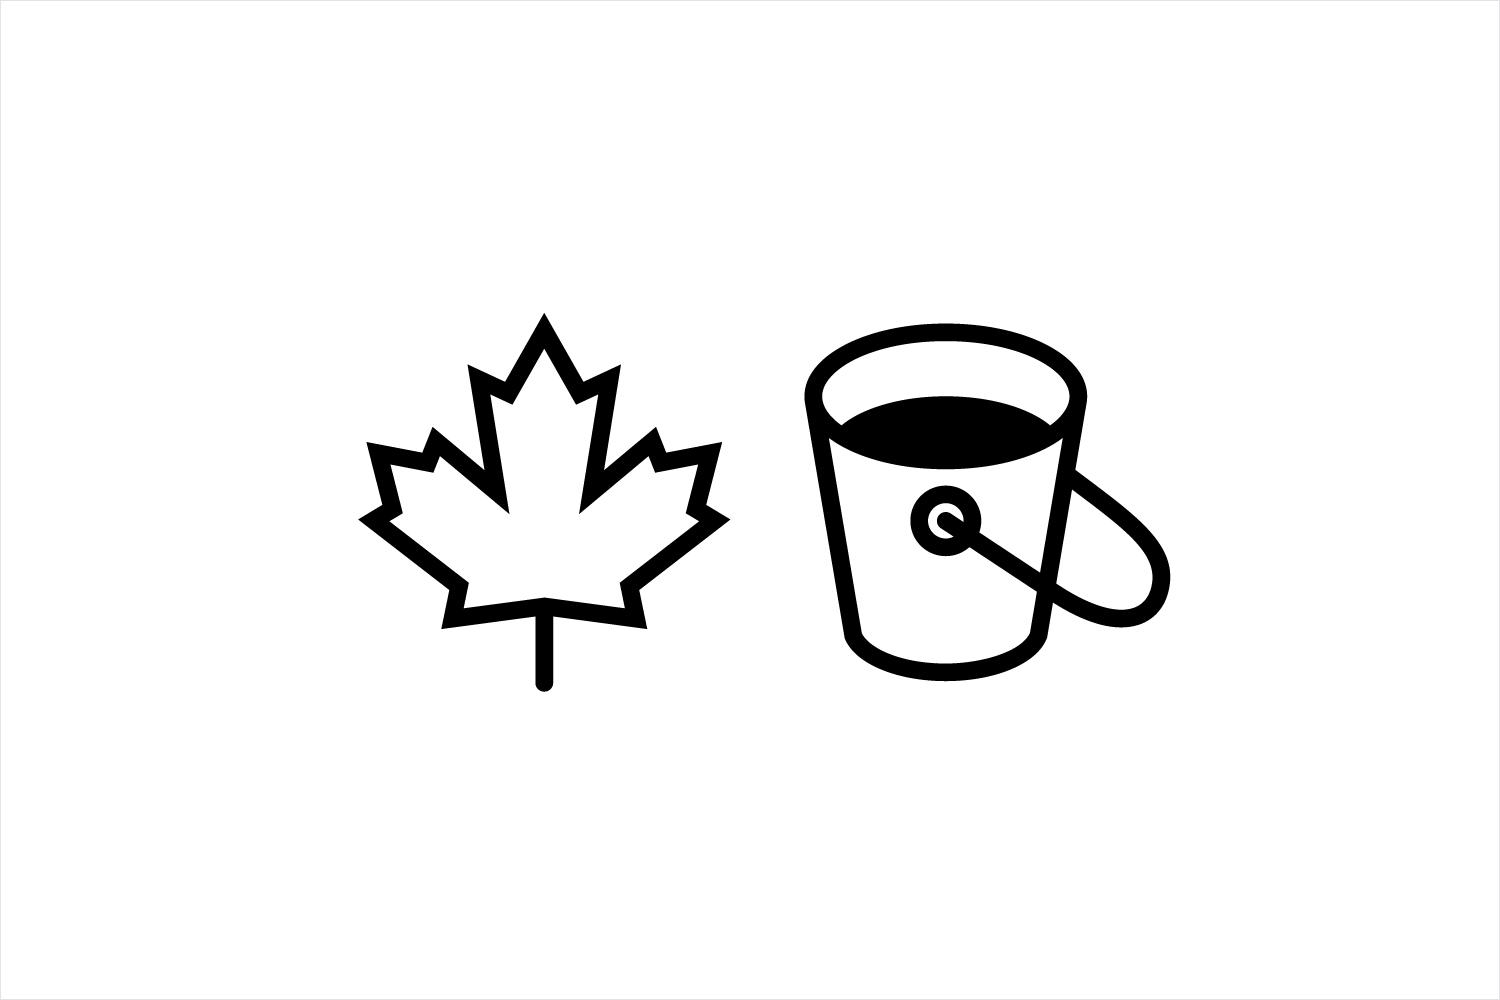 Iconography for premium maple syrup to celebrate UK-based graphic design studio Believe in's expansion into Canada